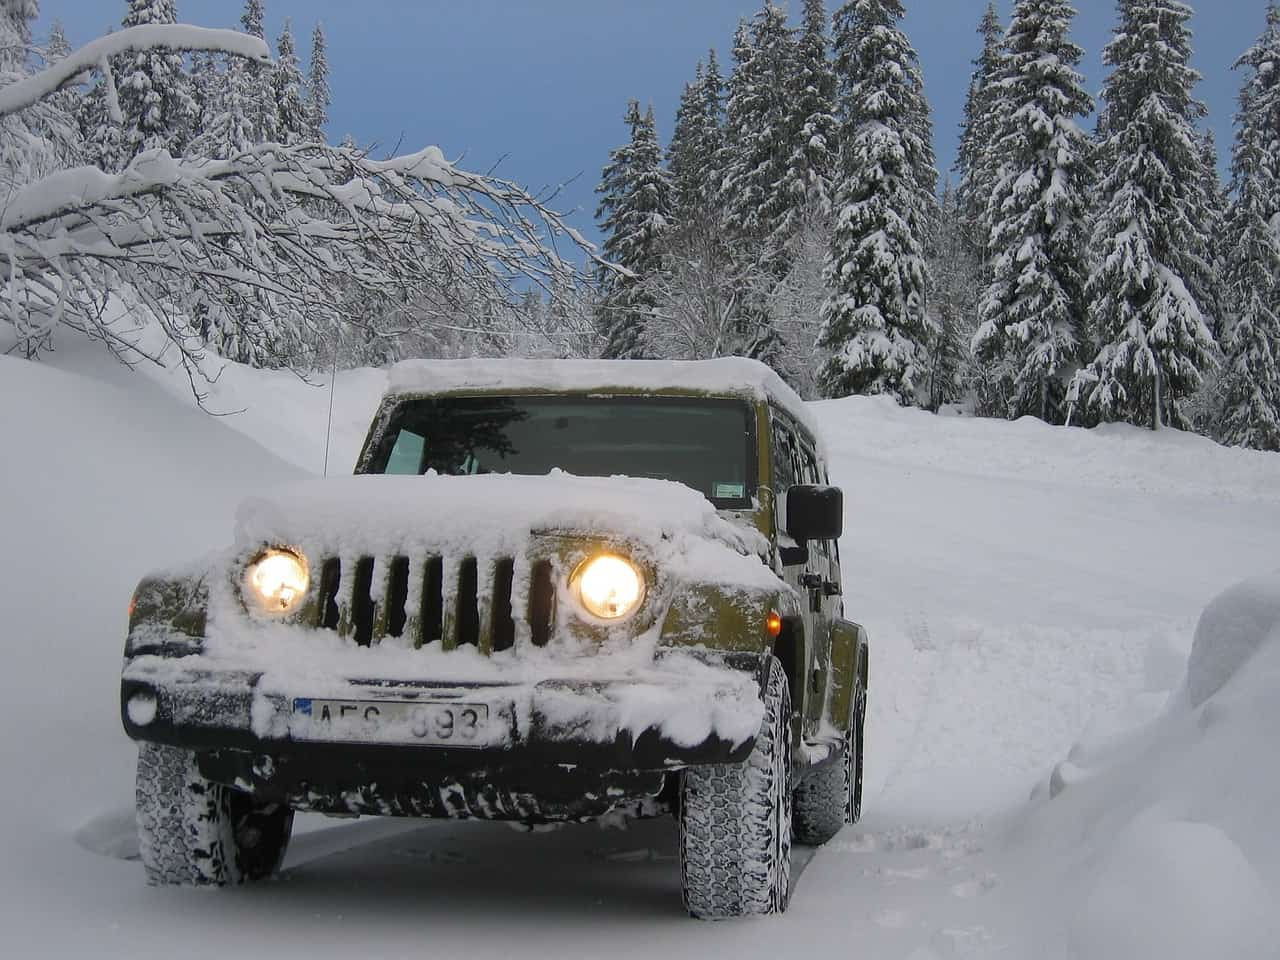 Warming Up Your Ignition Interlock This Winter How To Bypass An Device Iid Snowy Icy Mornings Are Rarely Met With A Smile Especially When You Already In Hurry Get Work It Is Cold Not Quite Awake